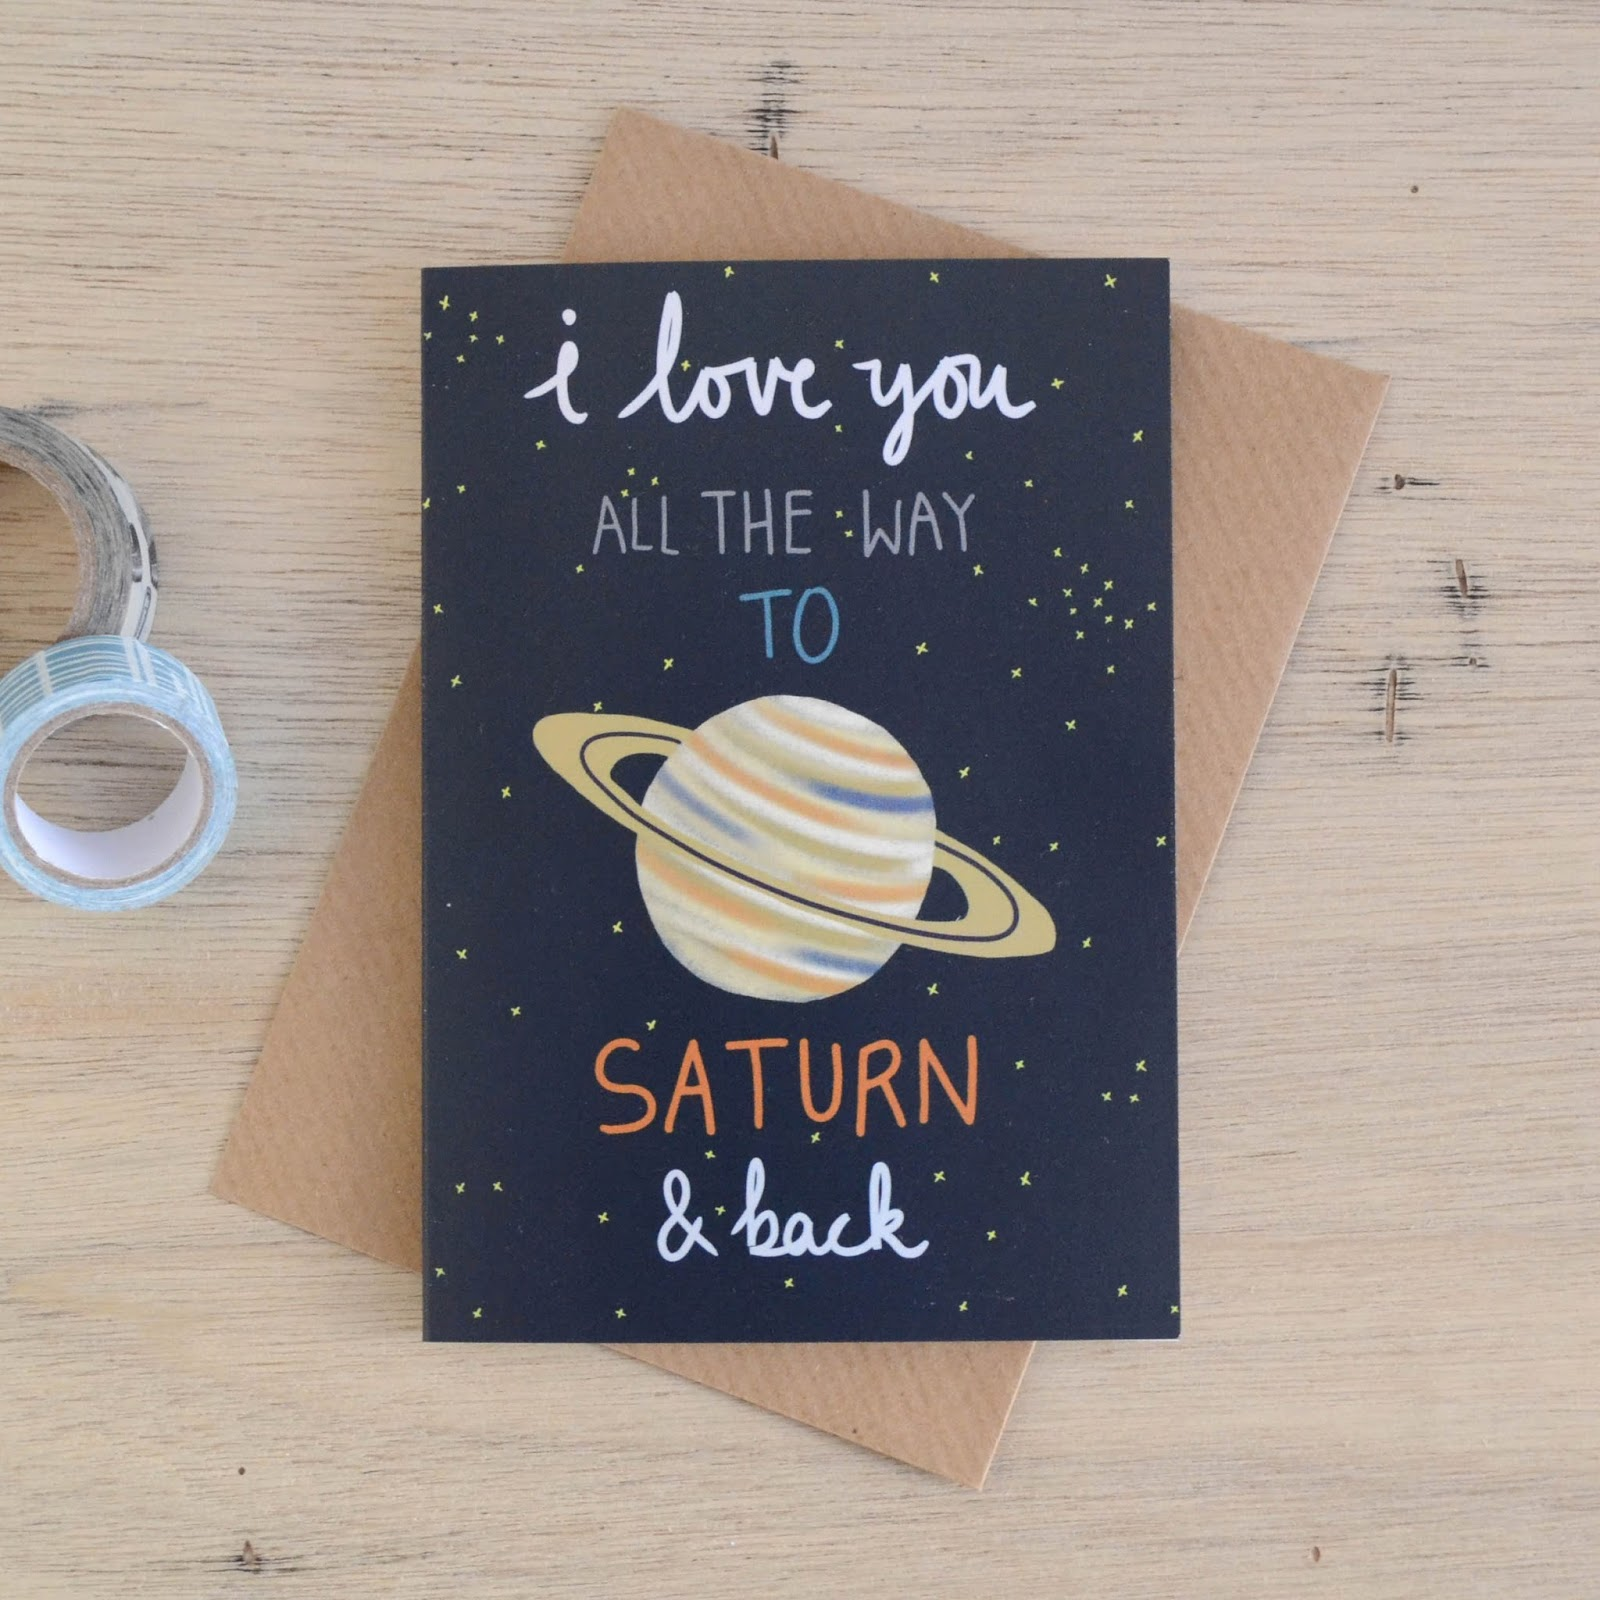 i love you to saturn